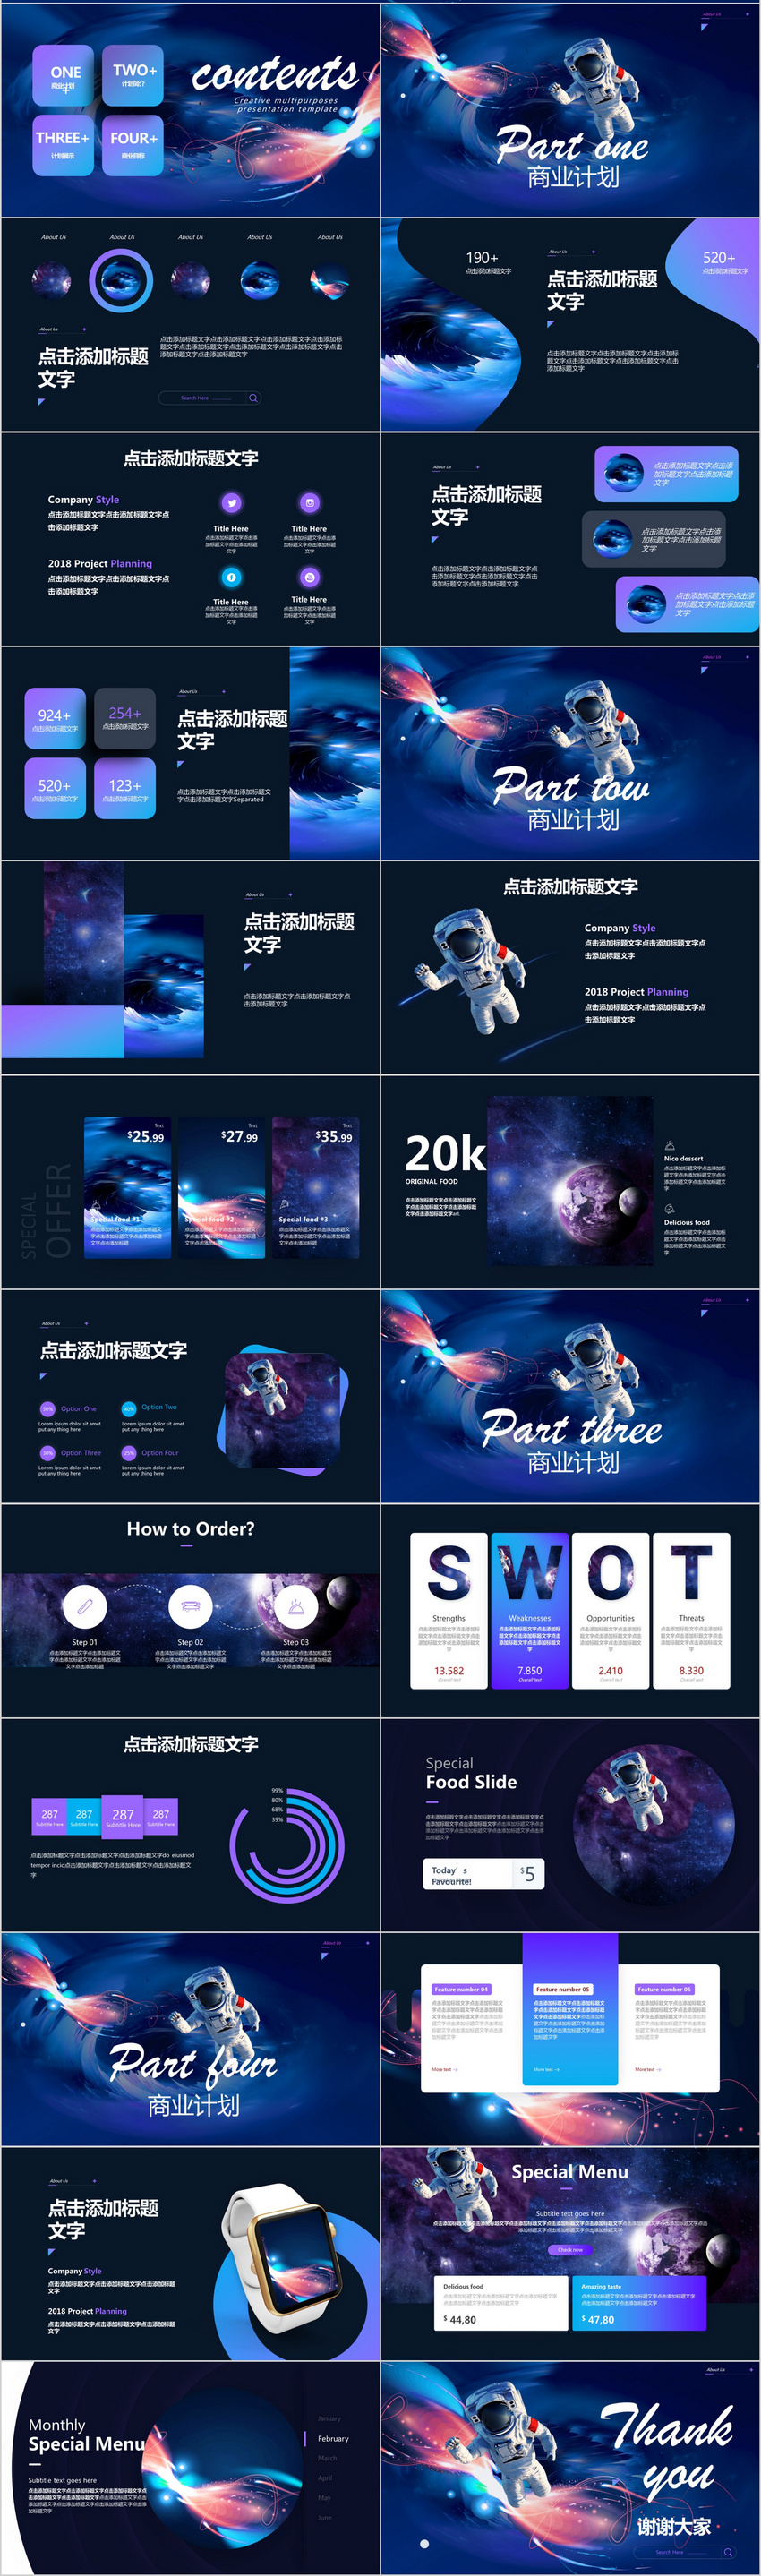 Black Hole Wind Business Plan Ppt Template Powerpoint Templete Ppt Free Download 401284733 Lovepik Com